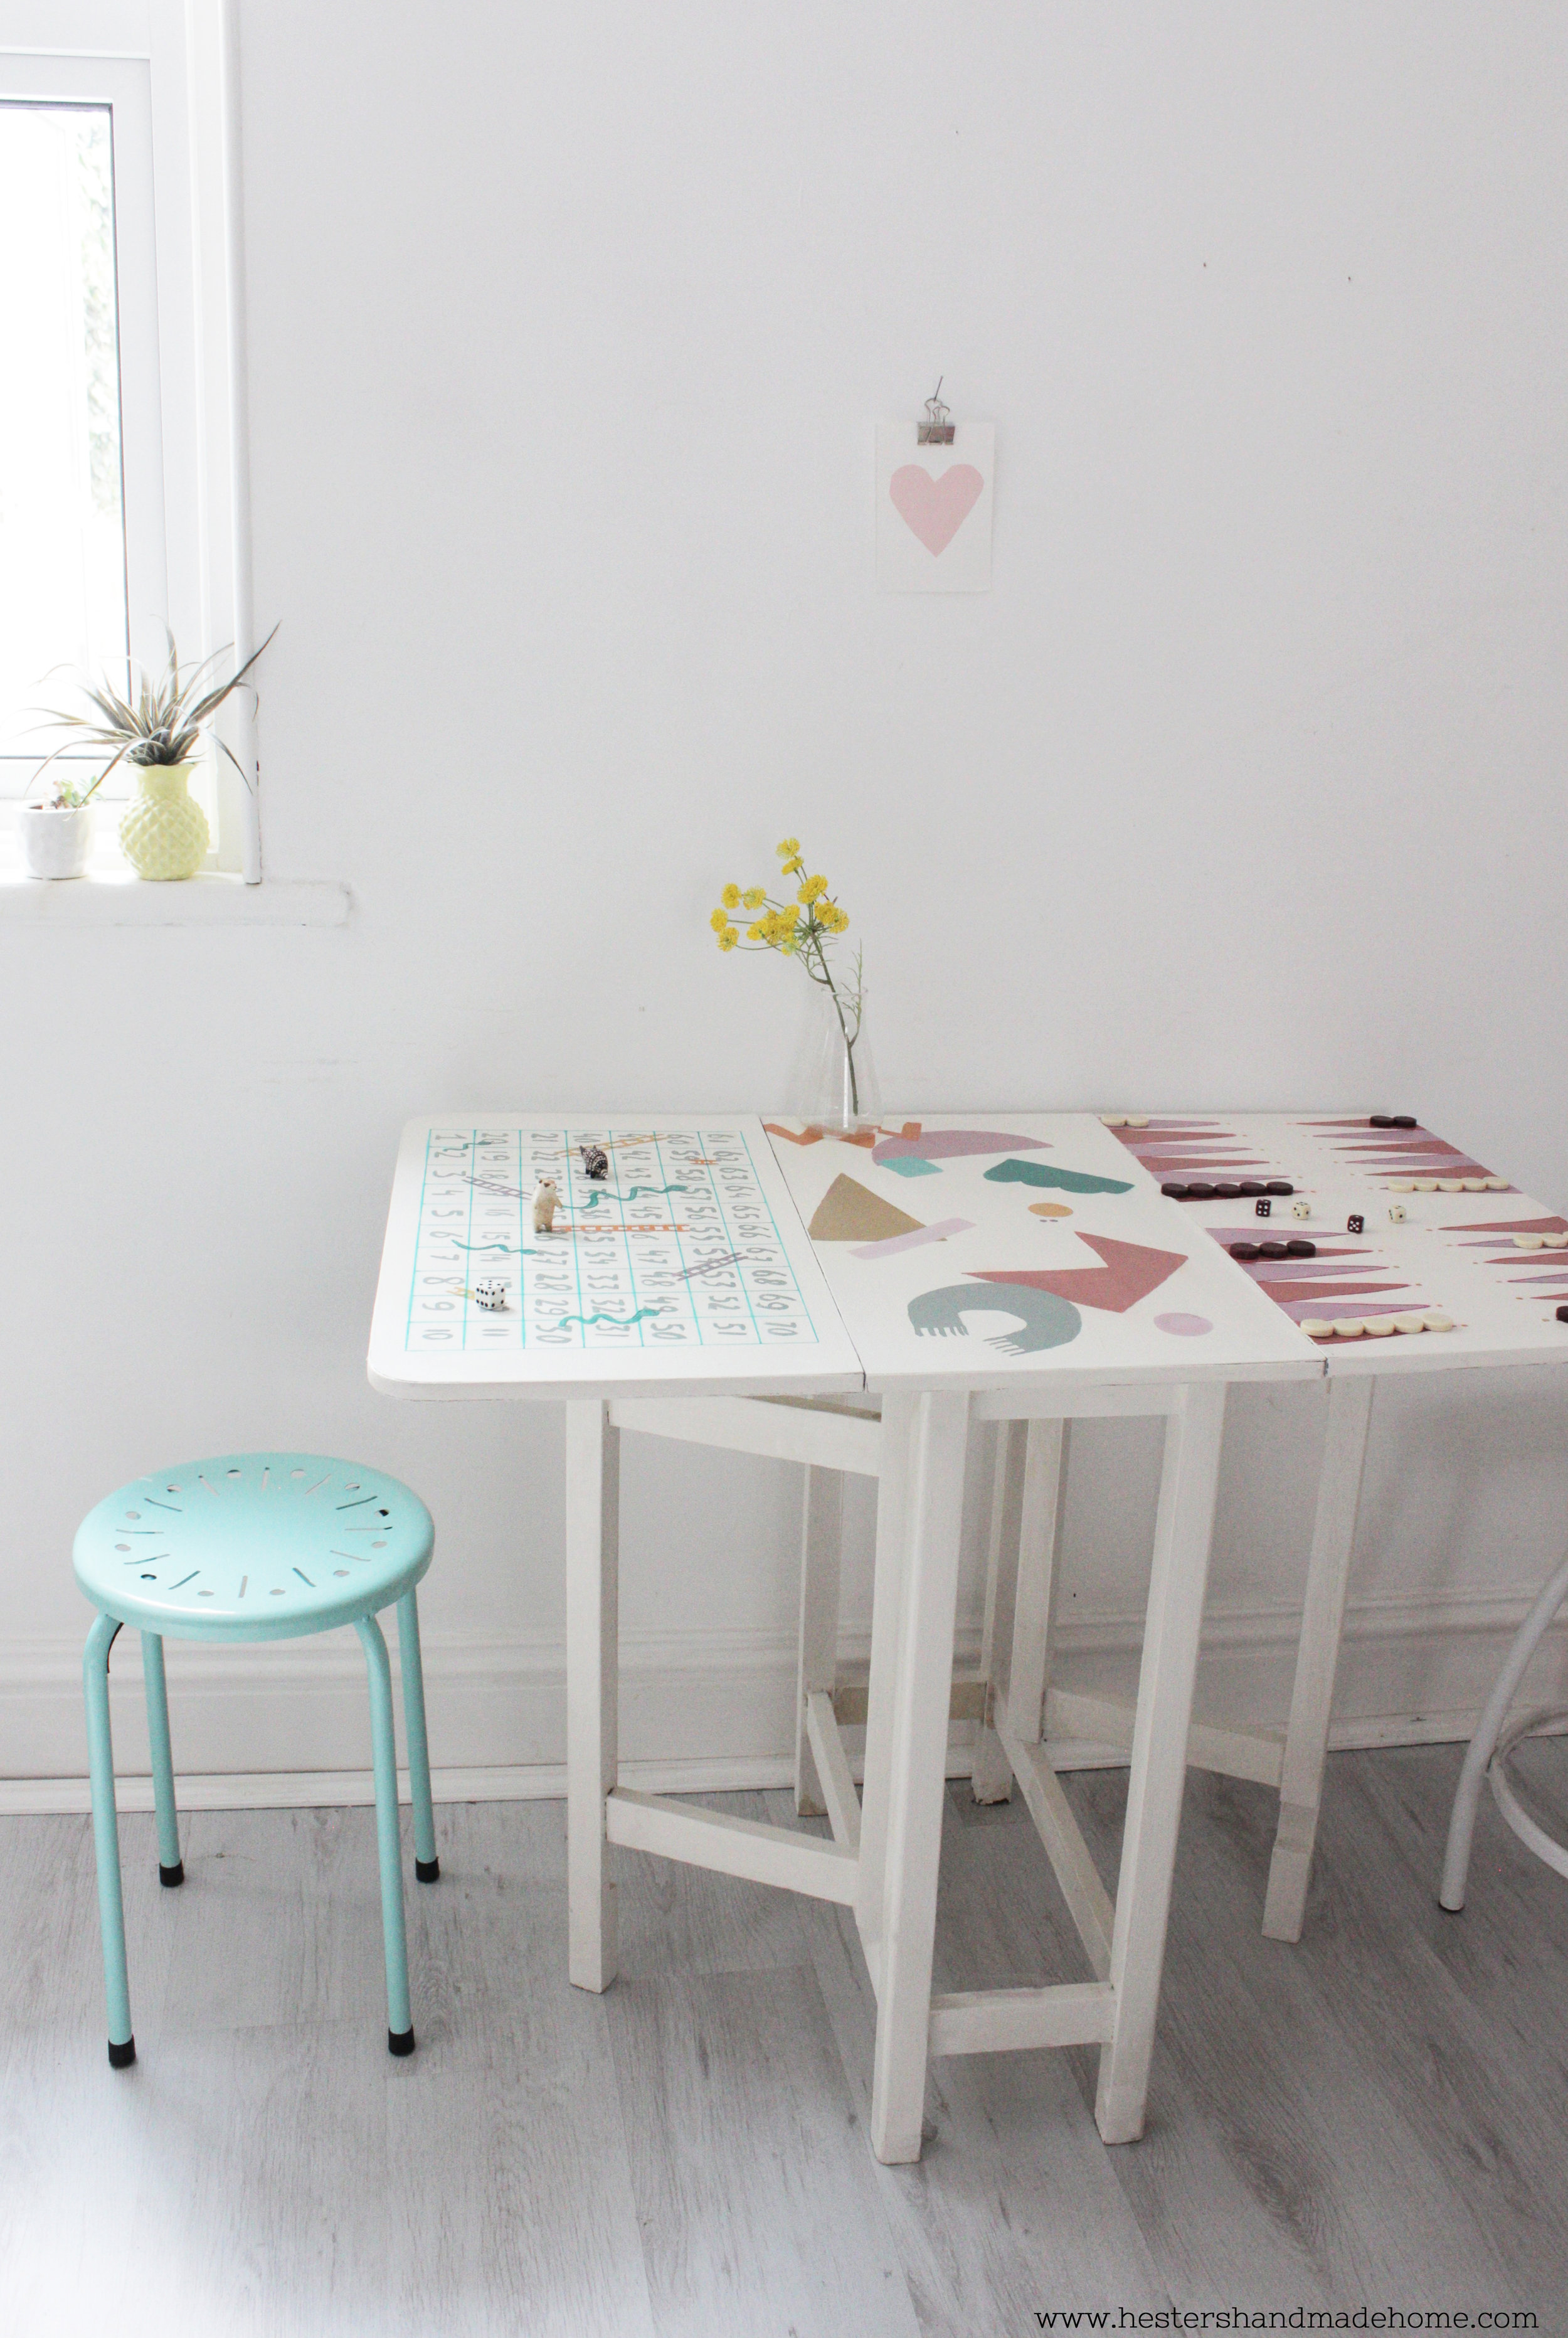 Games table by www.hestershandmadehome.com